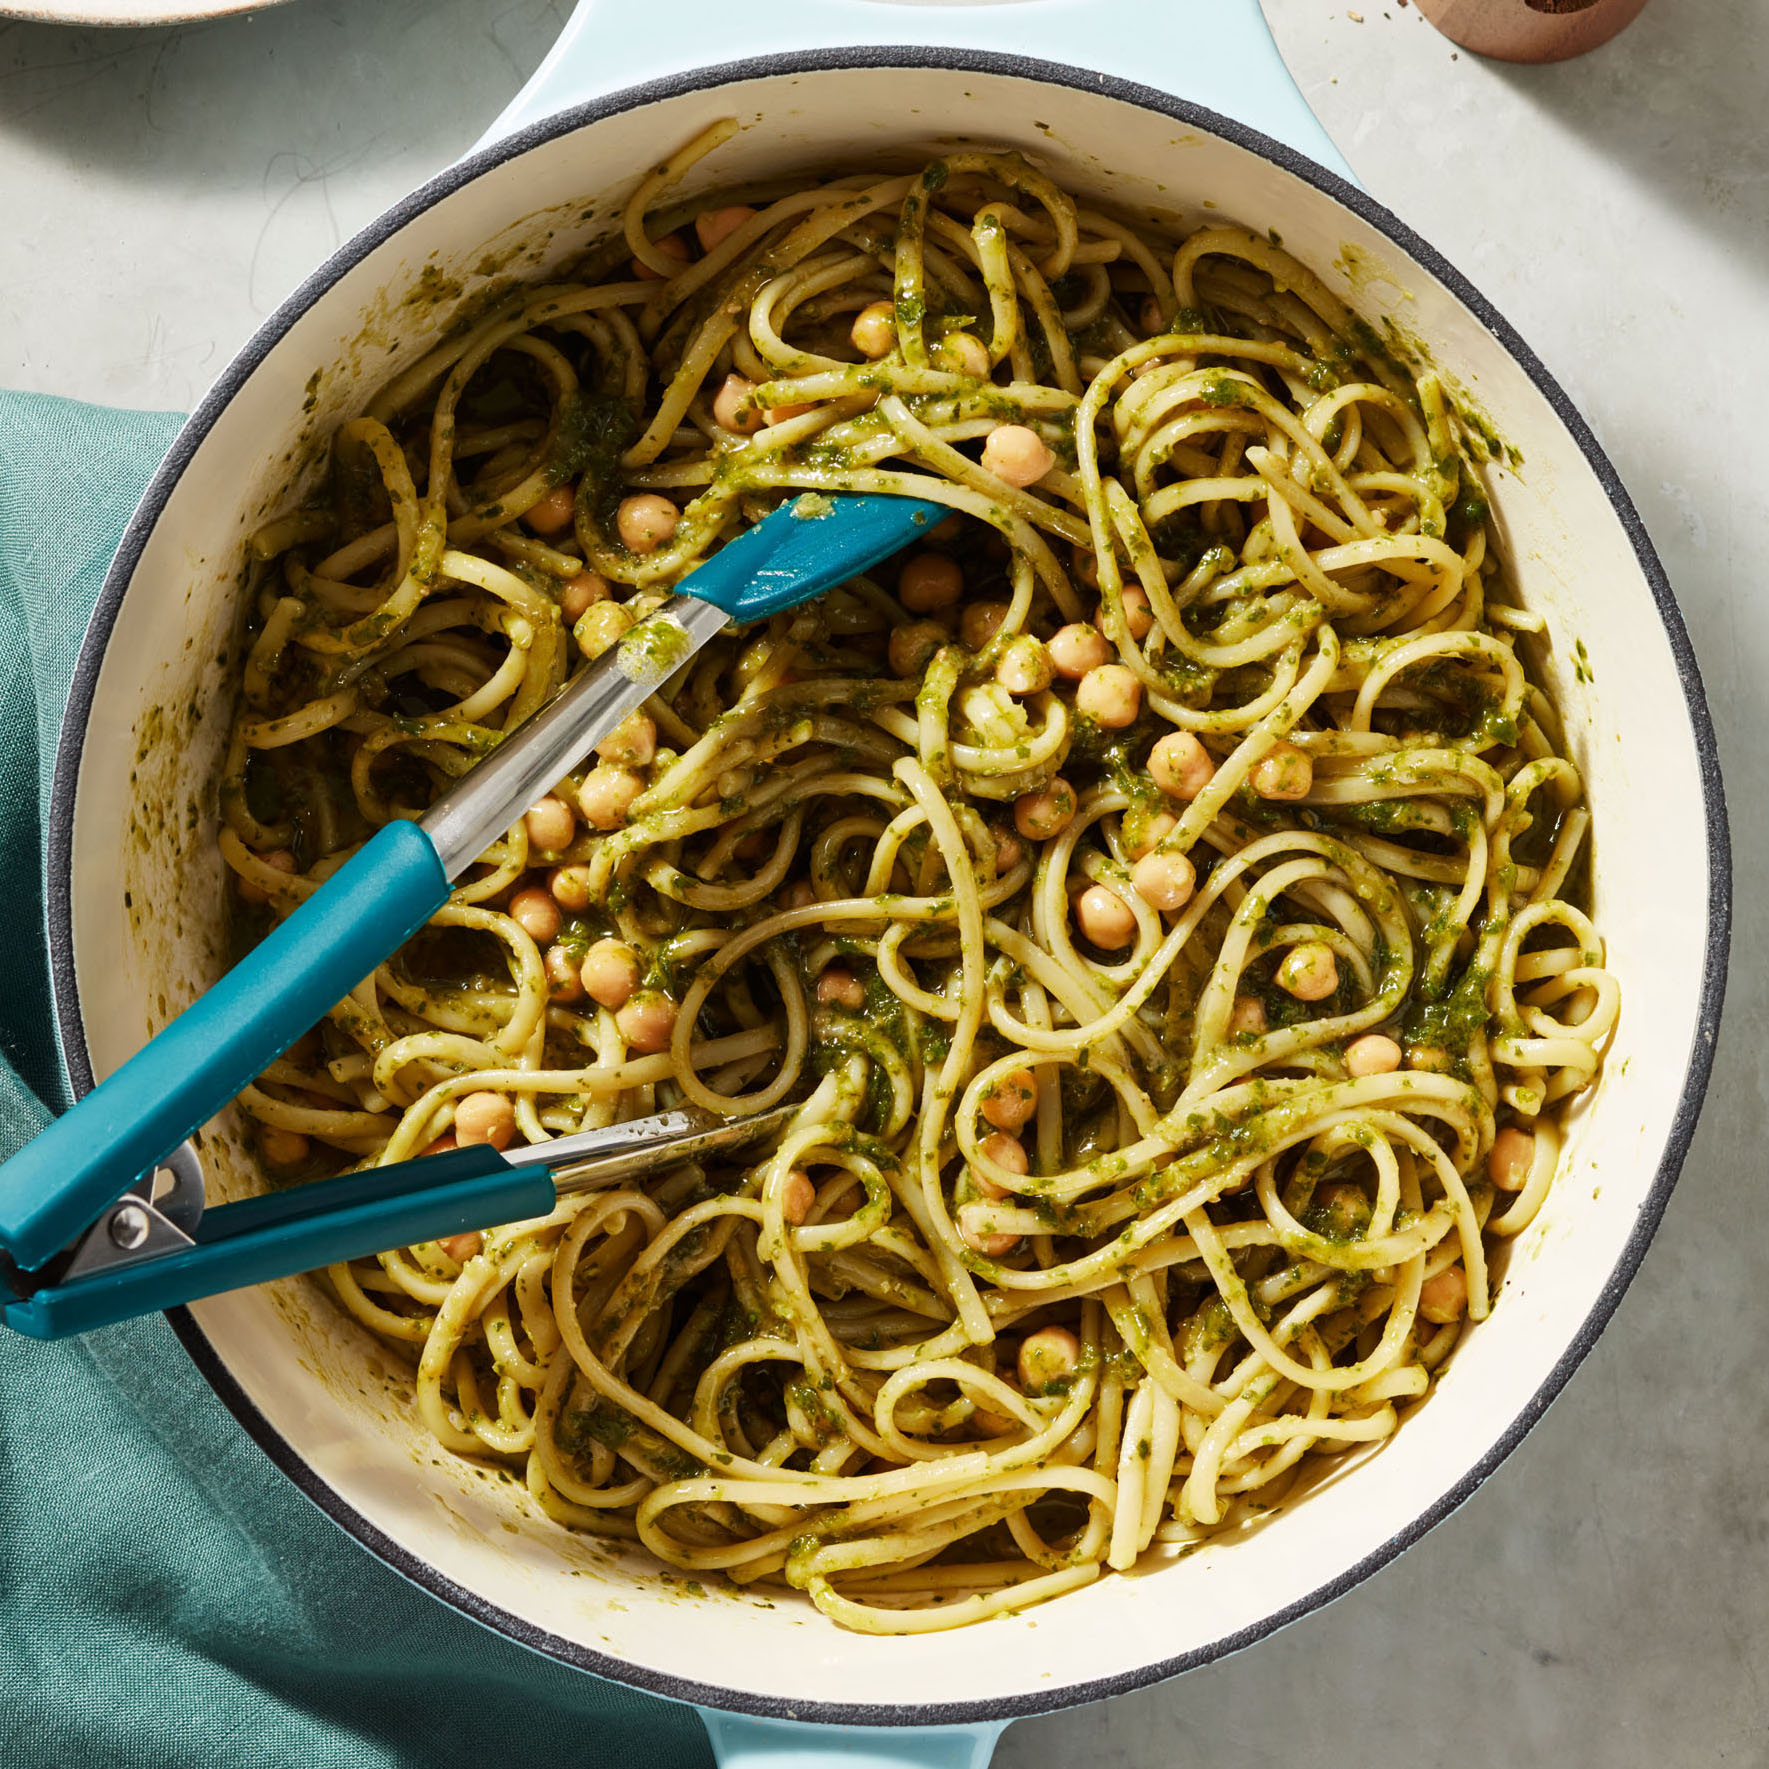 Chickpea and Basil Pasta served with blue tongs